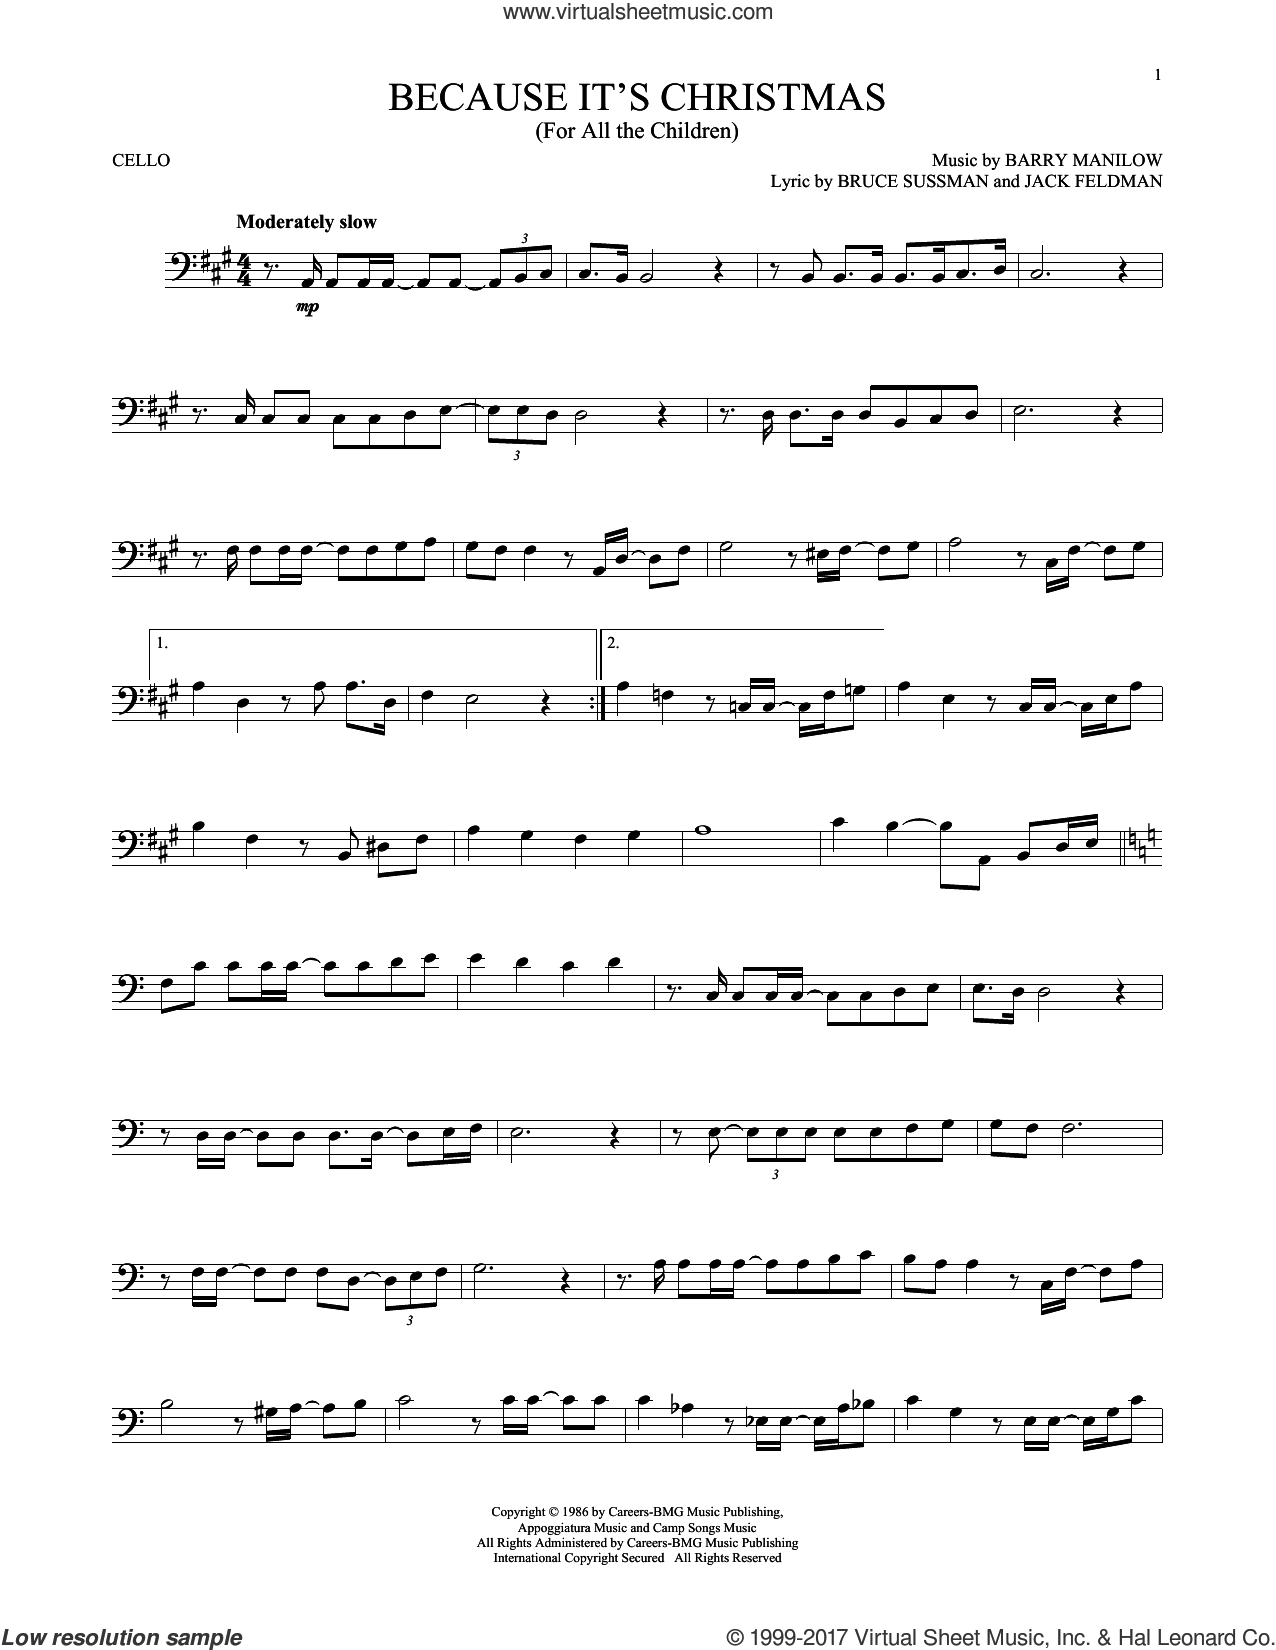 Because It's Christmas (For All The Children) sheet music for cello solo by Barry Manilow, Bruce Sussman and Jack Feldman, intermediate skill level